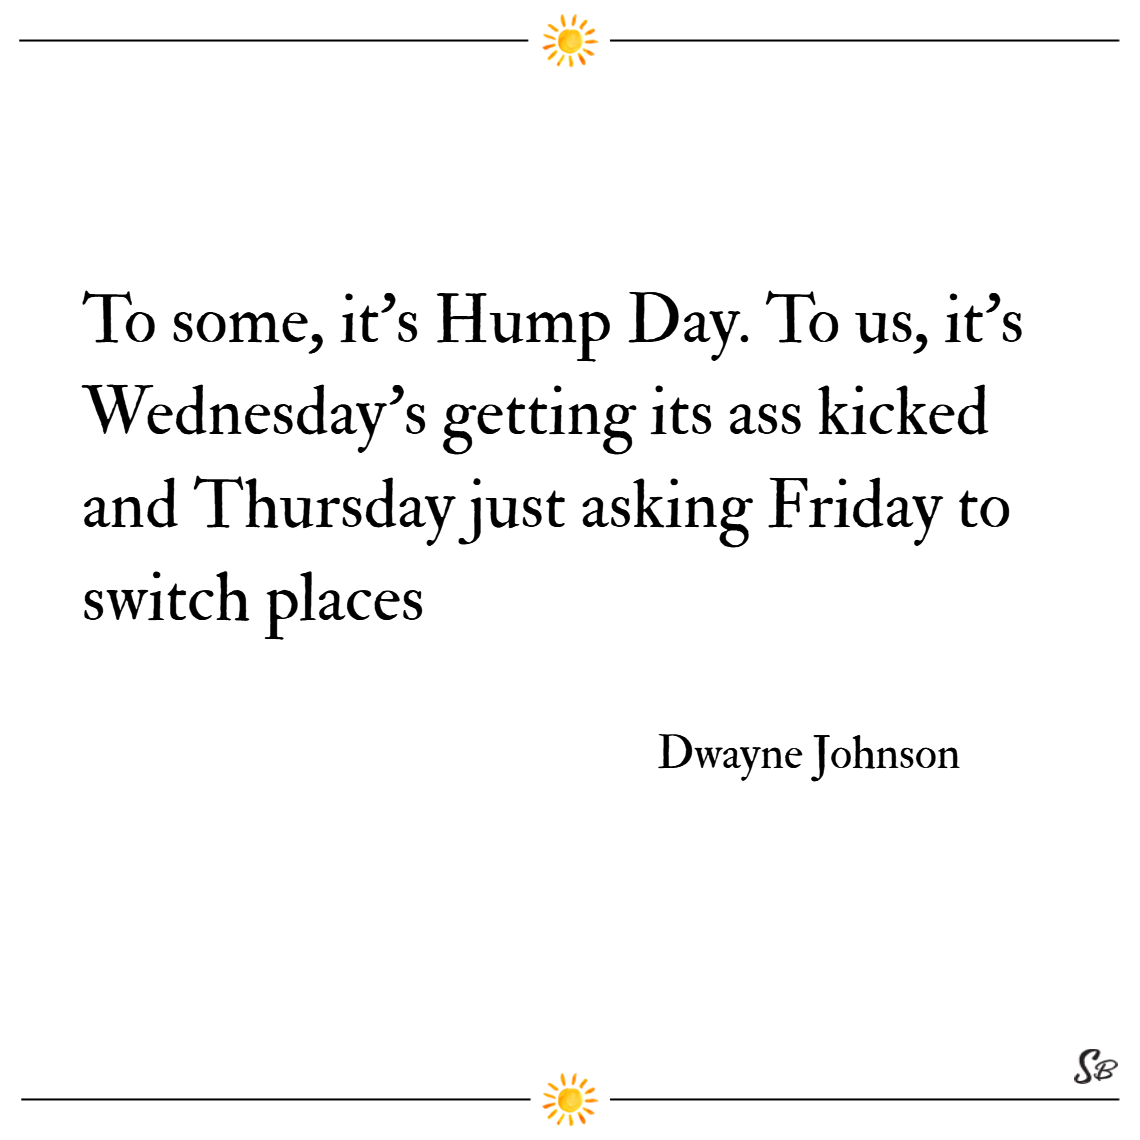 To some, it's hump day. to us, it's wednesday's getting its ass kicked and thursday just asked friday to switch places. – dwayne johnson